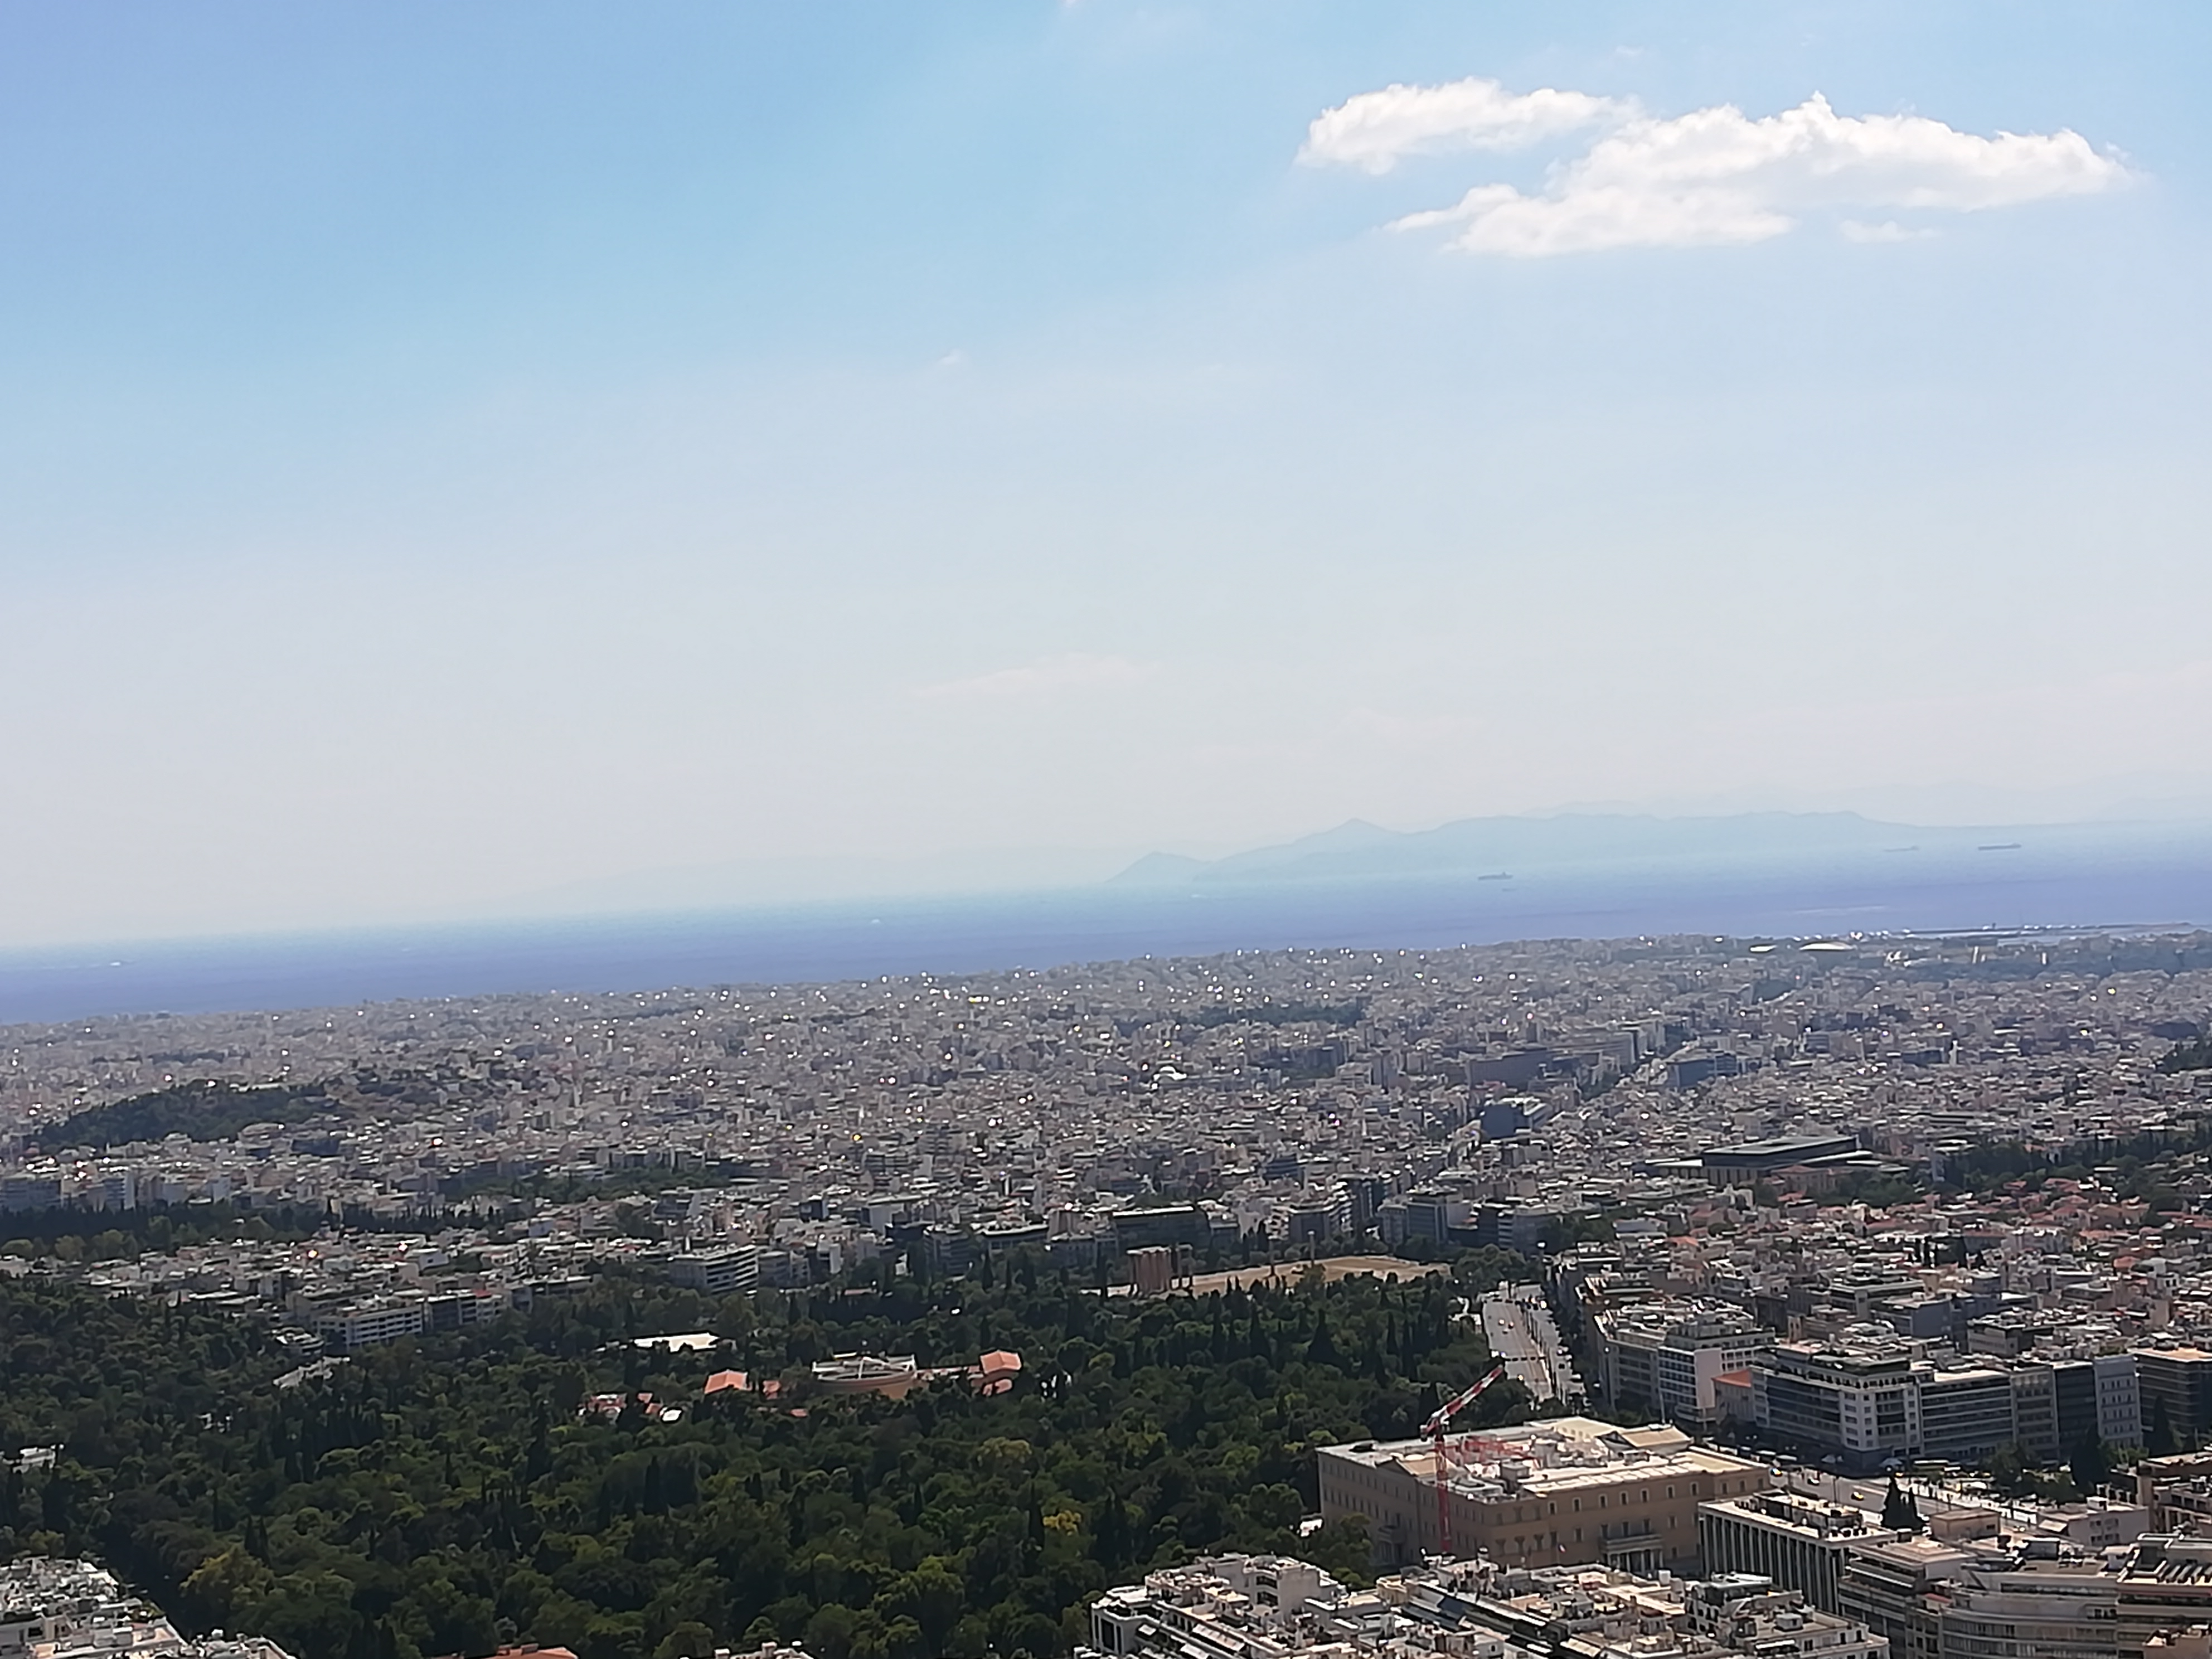 fb5a249eca723 I leave you with another picture from my various trips across Athens, this  time an incredible view of the city from the top of Mount Lycabettus. See  you ...